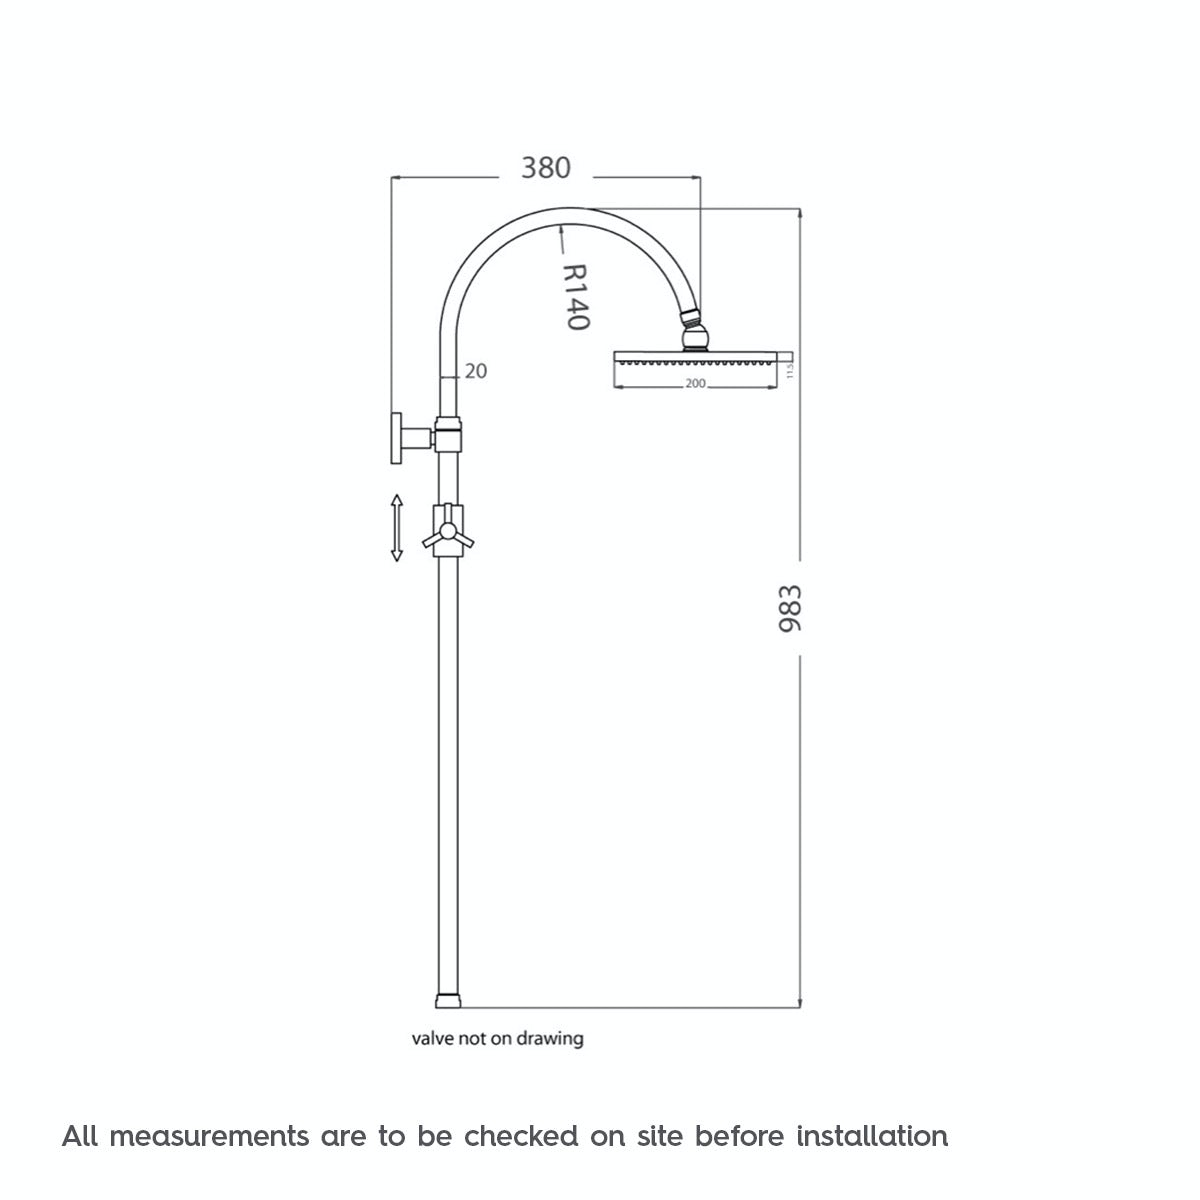 Dimensions for Orchard Derwent round shower riser system